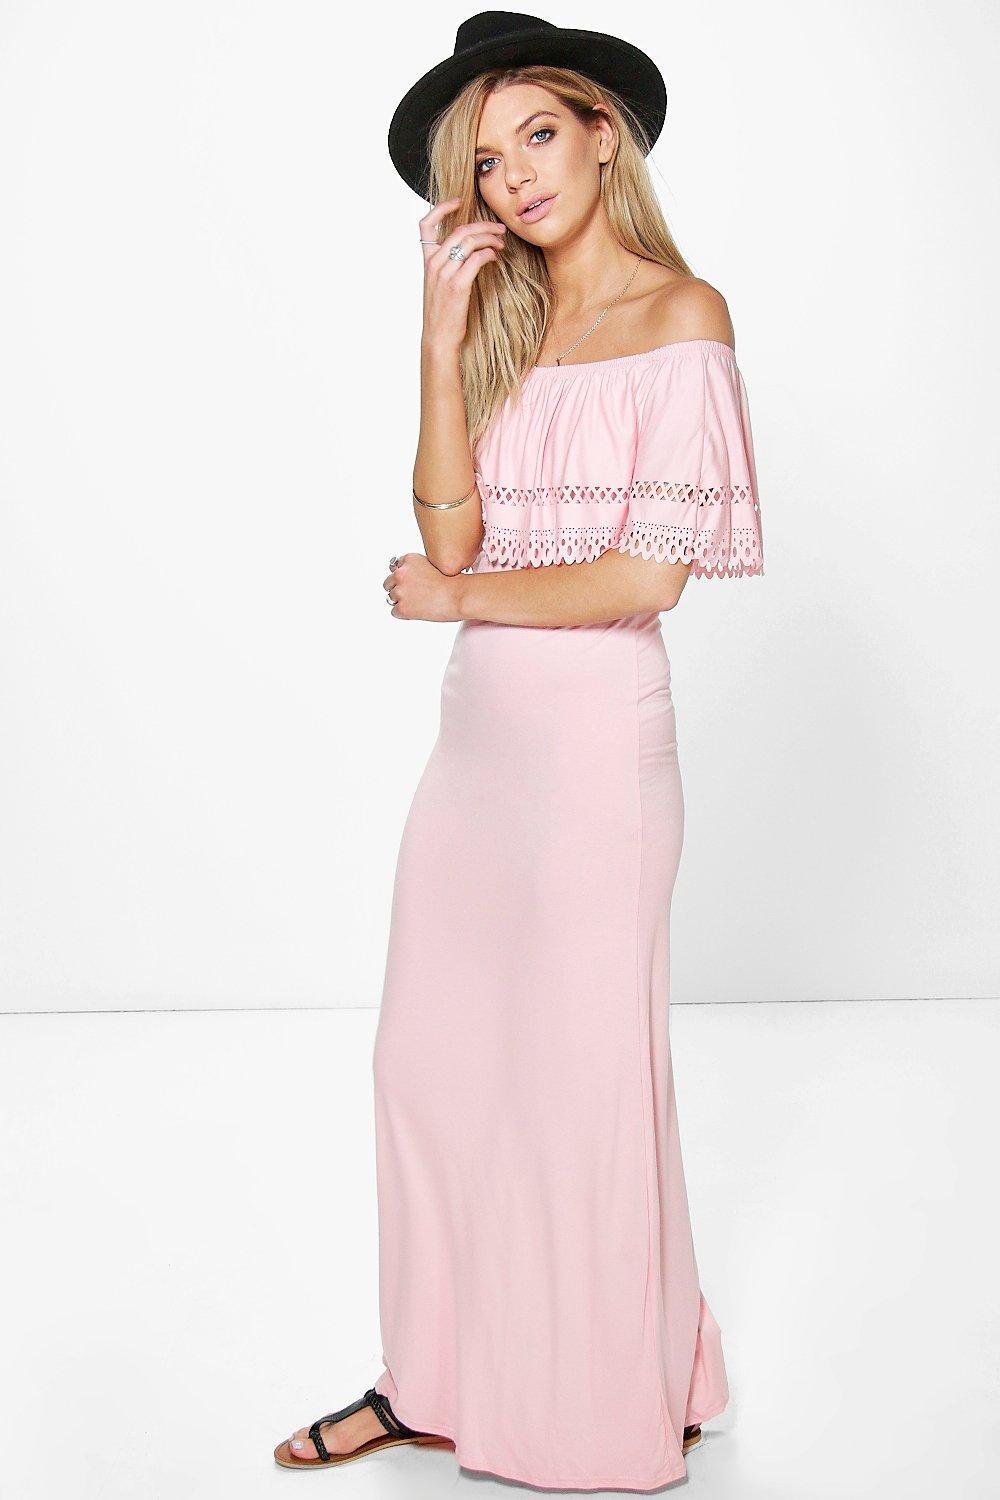 Laser Cut Bandeau Maxi Dress Peach - neckline: off the shoulder; pattern: plain; style: maxi dress; predominant colour: blush; occasions: casual; length: floor length; fit: body skimming; fibres: polyester/polyamide - stretch; sleeve length: short sleeve; sleeve style: standard; pattern type: fabric; texture group: jersey - stretchy/drapey; season: s/s 2016